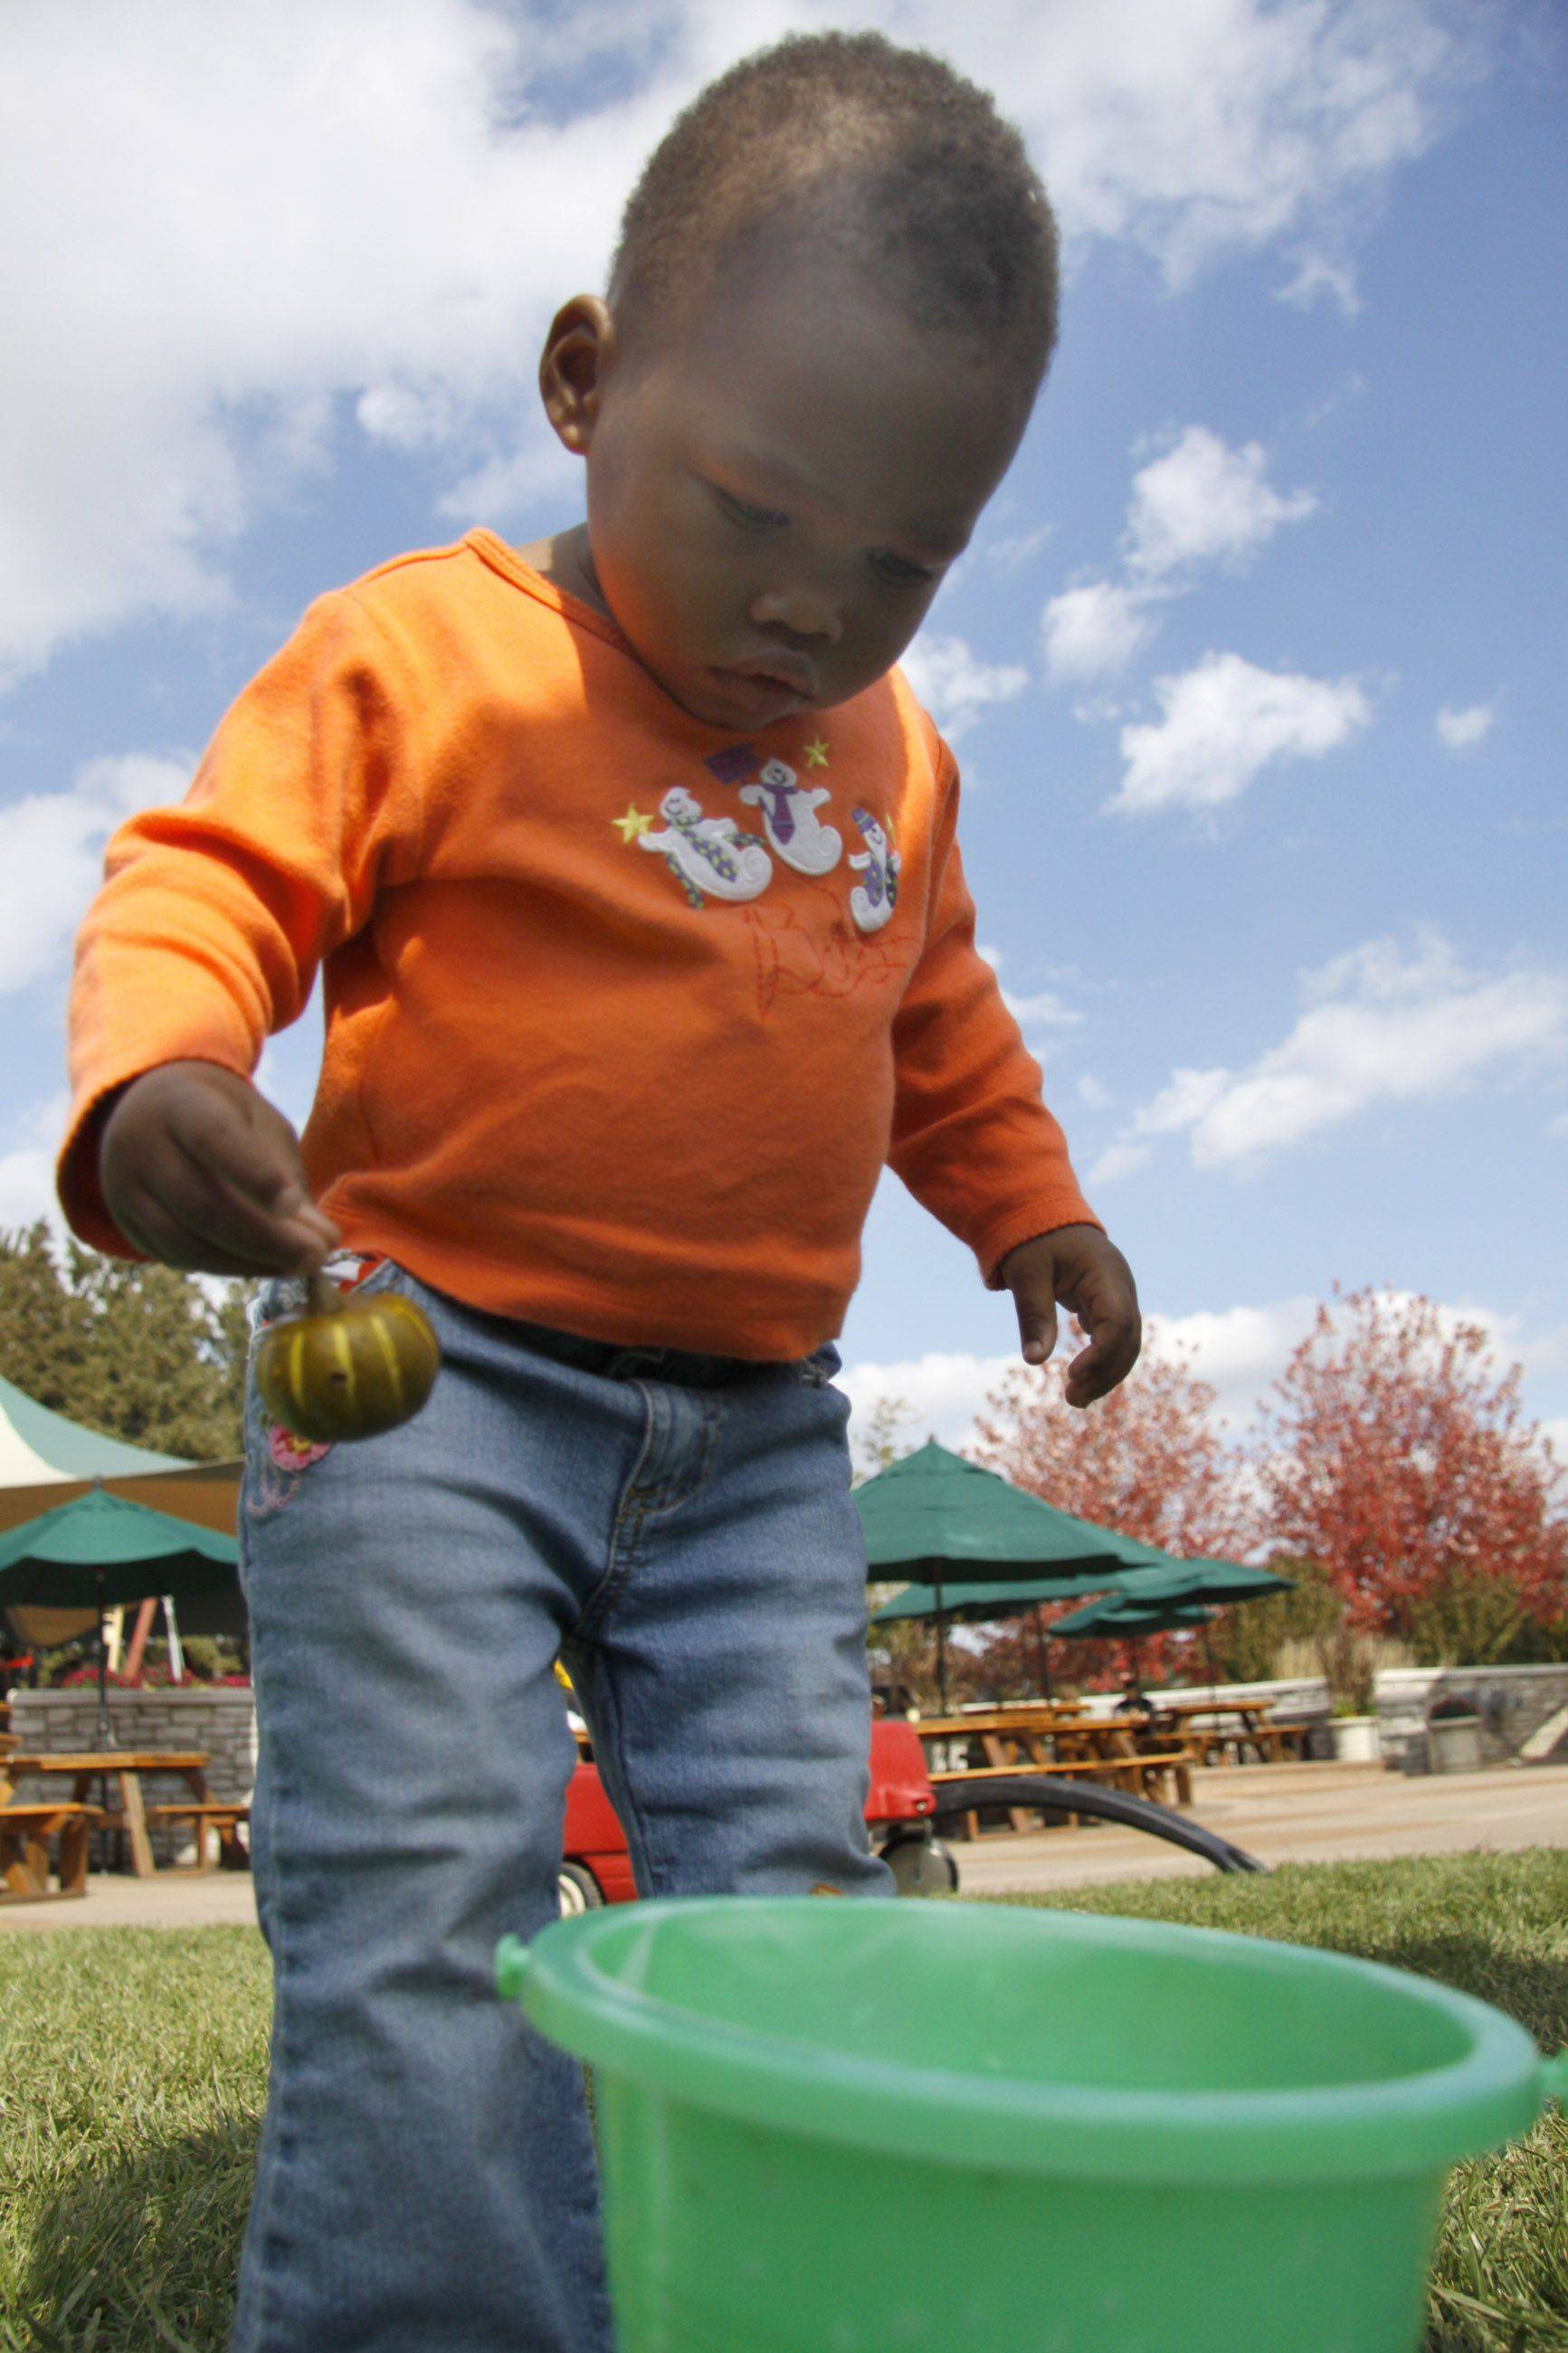 Sandina Lewen, 2, of Willowbrook tries to put a gourd into the bucket at one of the children's activities at Morton Arboretum's Fall Festival Sunday. Lewen who was recently adopted from Haiti in January, and is celebrating her first American Halloween.